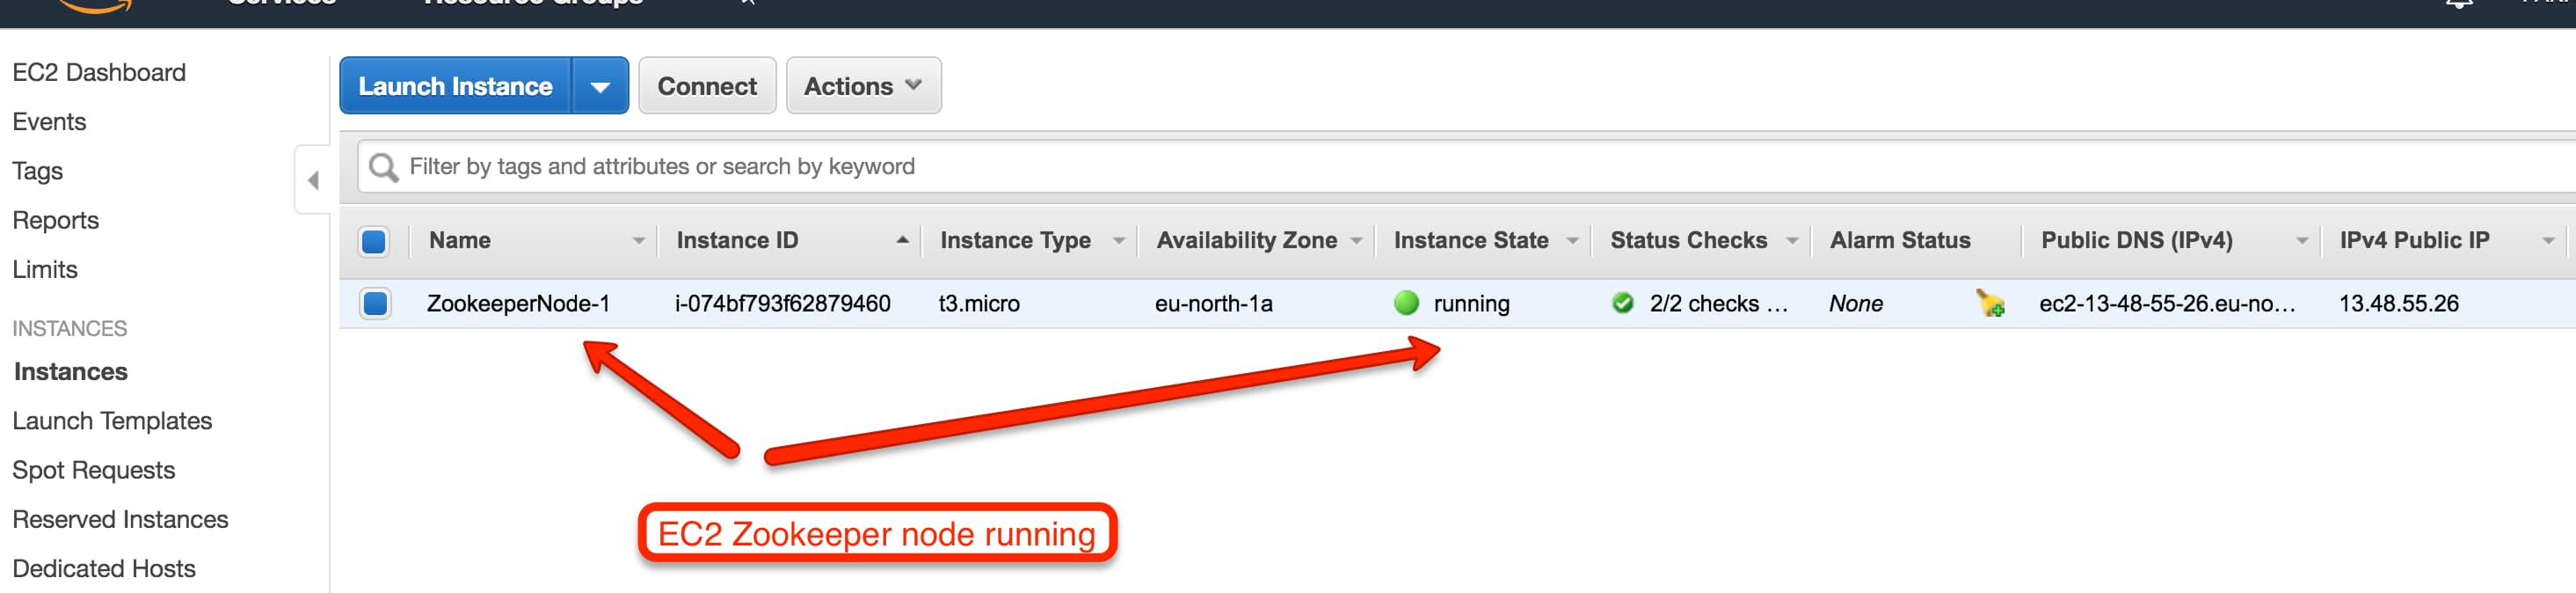 Deploying a Zookeeper Ensemble on AWS - Tech Career Booster